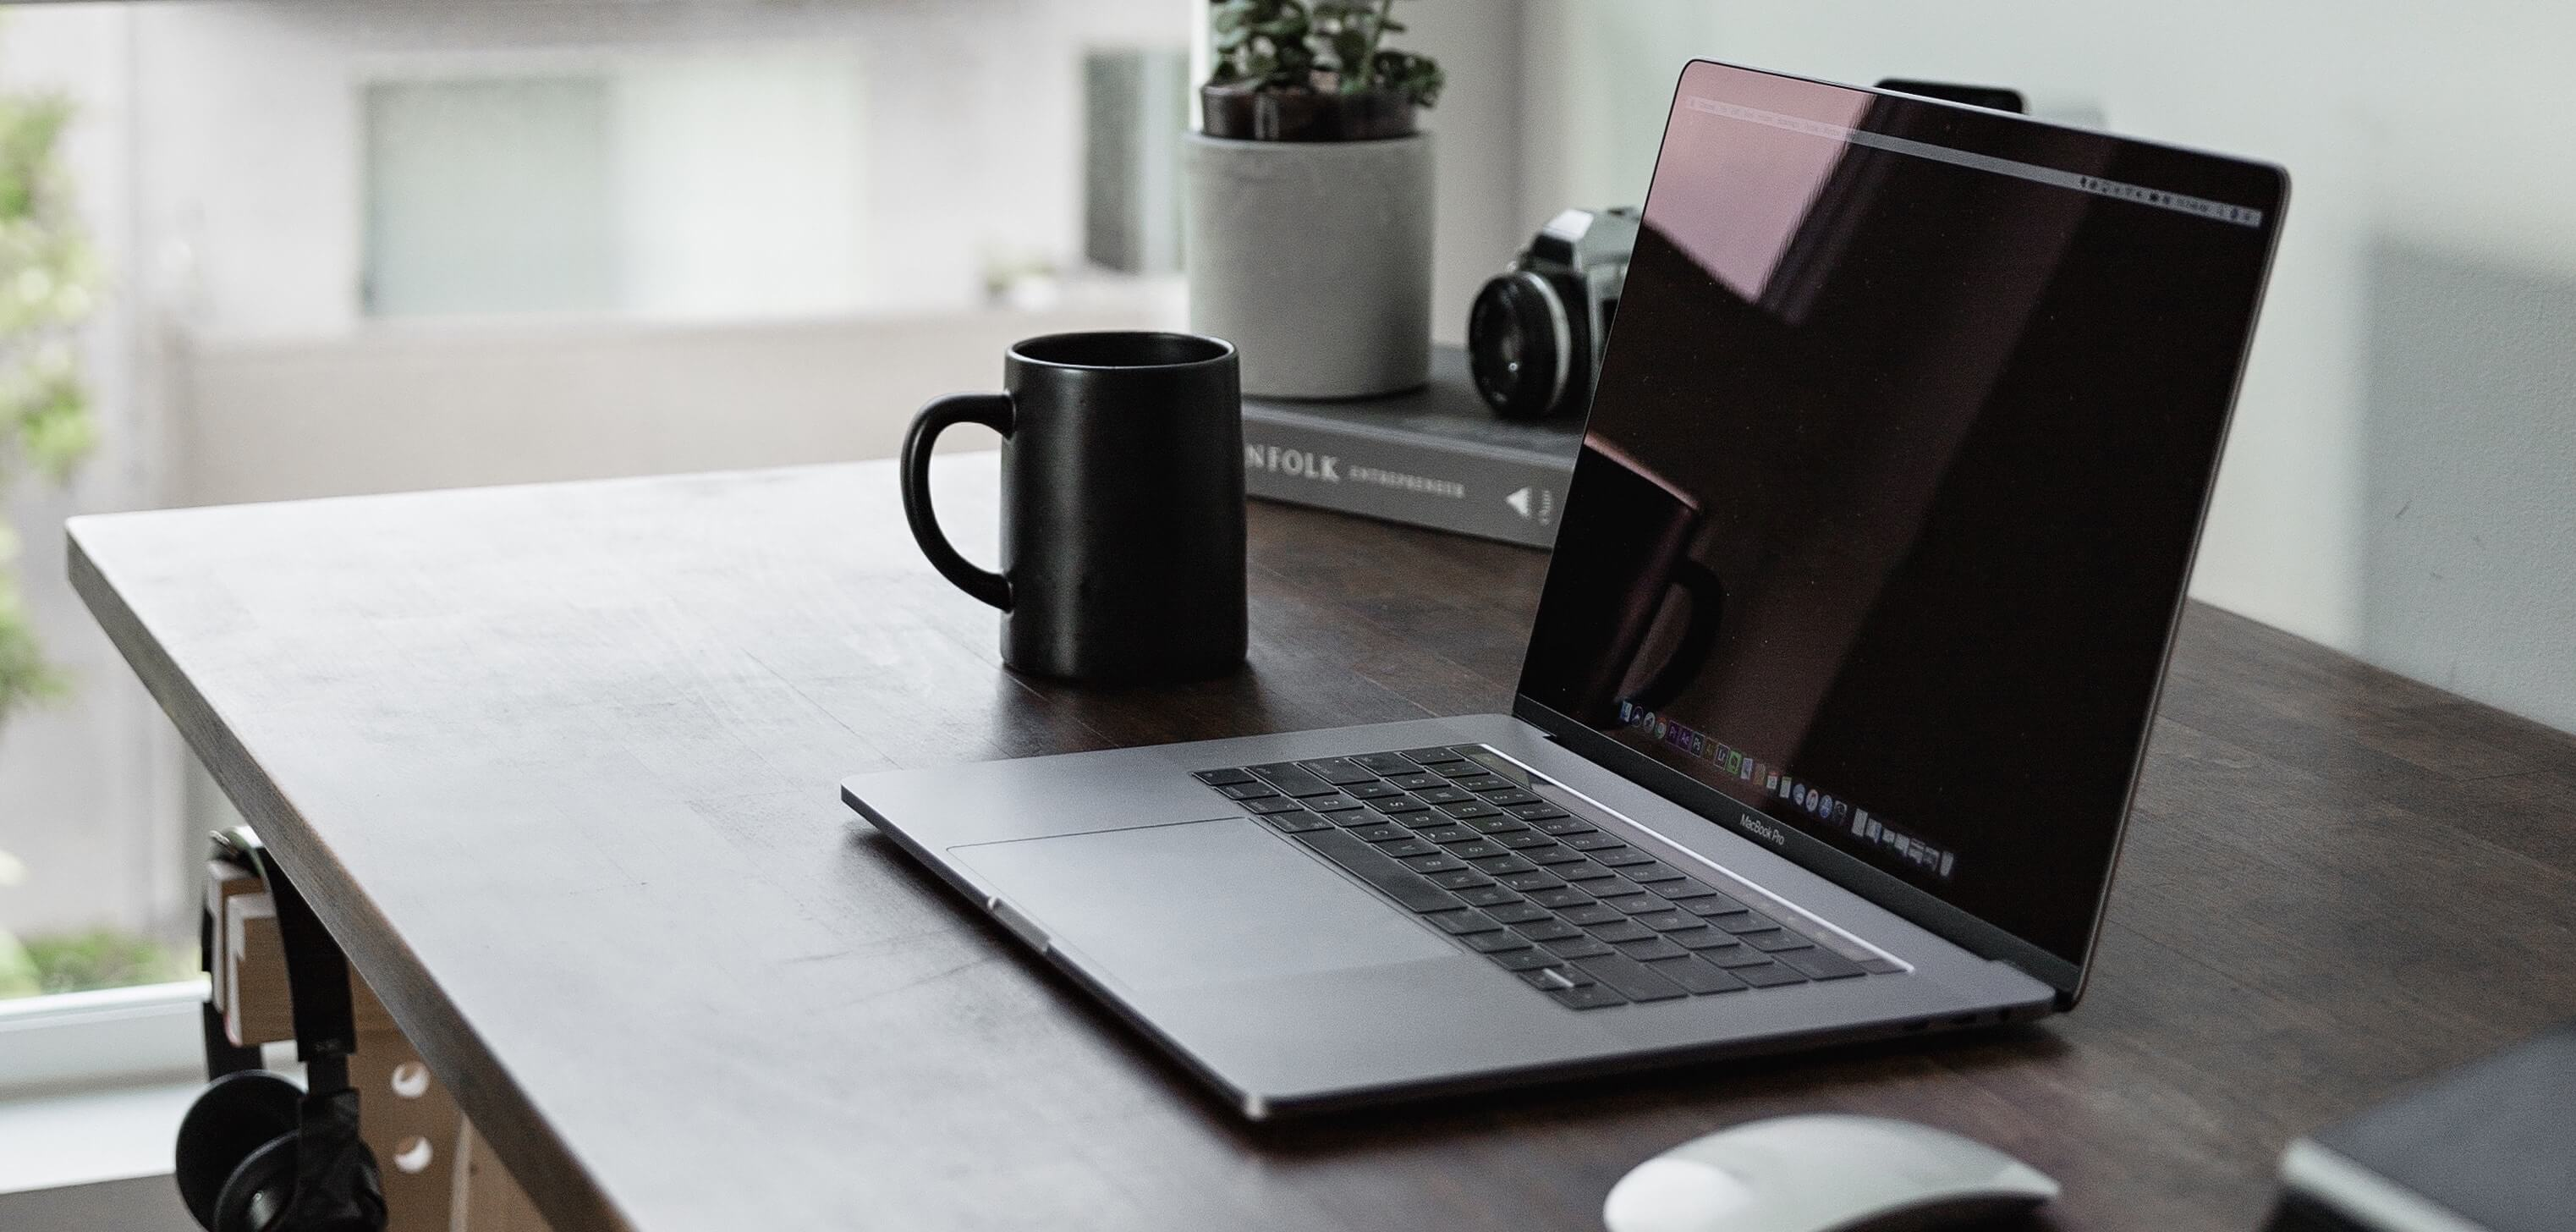 Image of laptop and coffee cup on desk